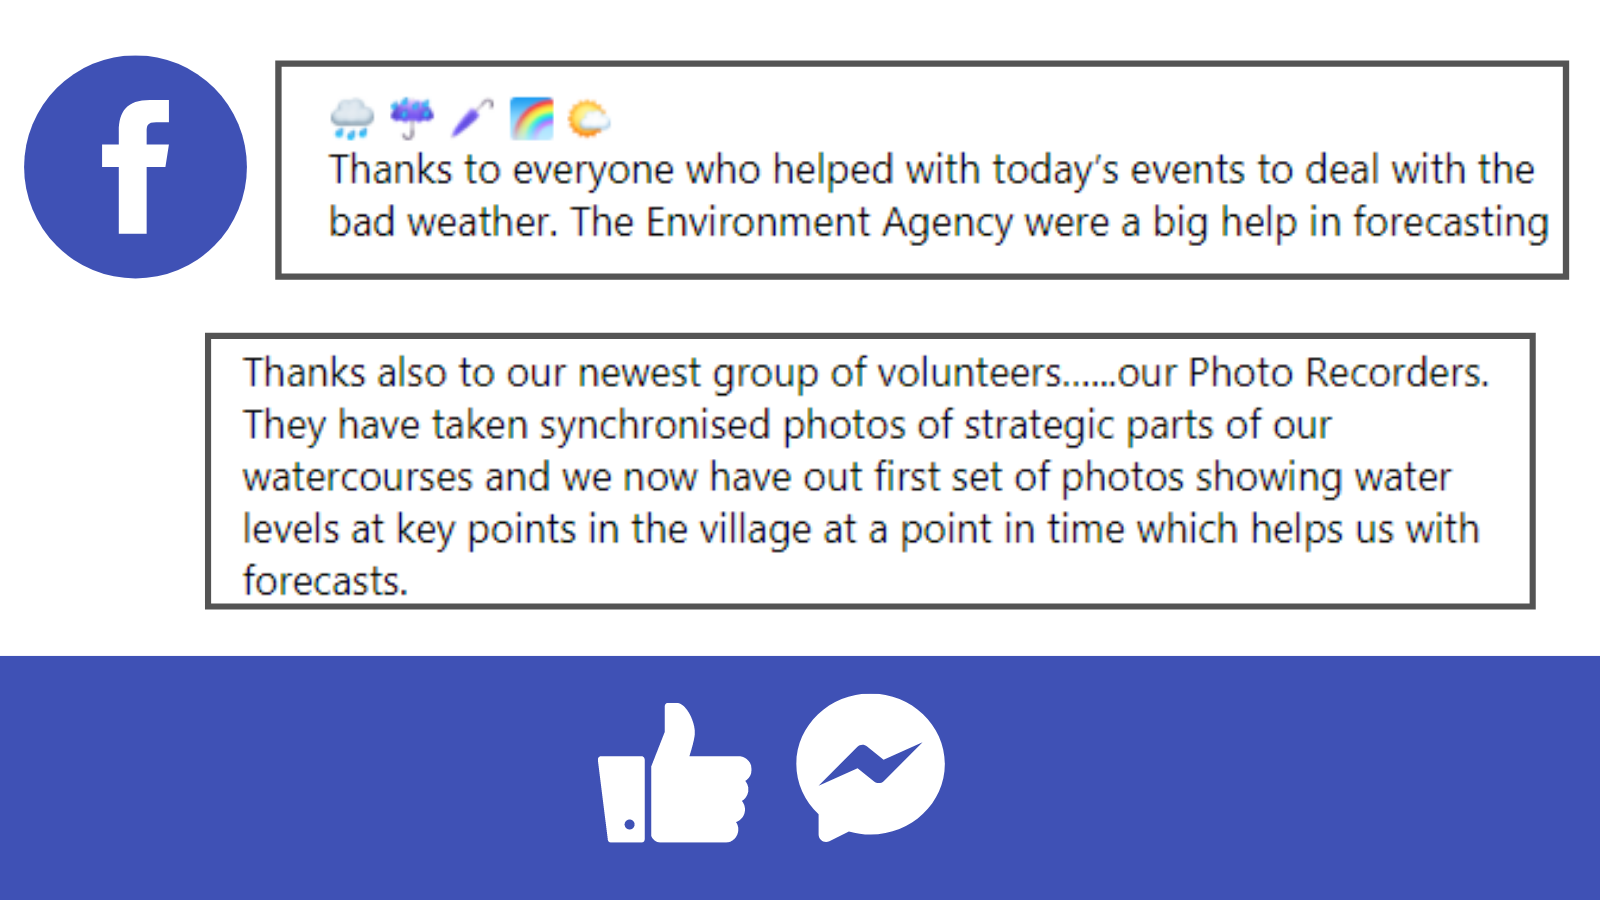 Online volunteer engagement: through COVID-19 and beyond